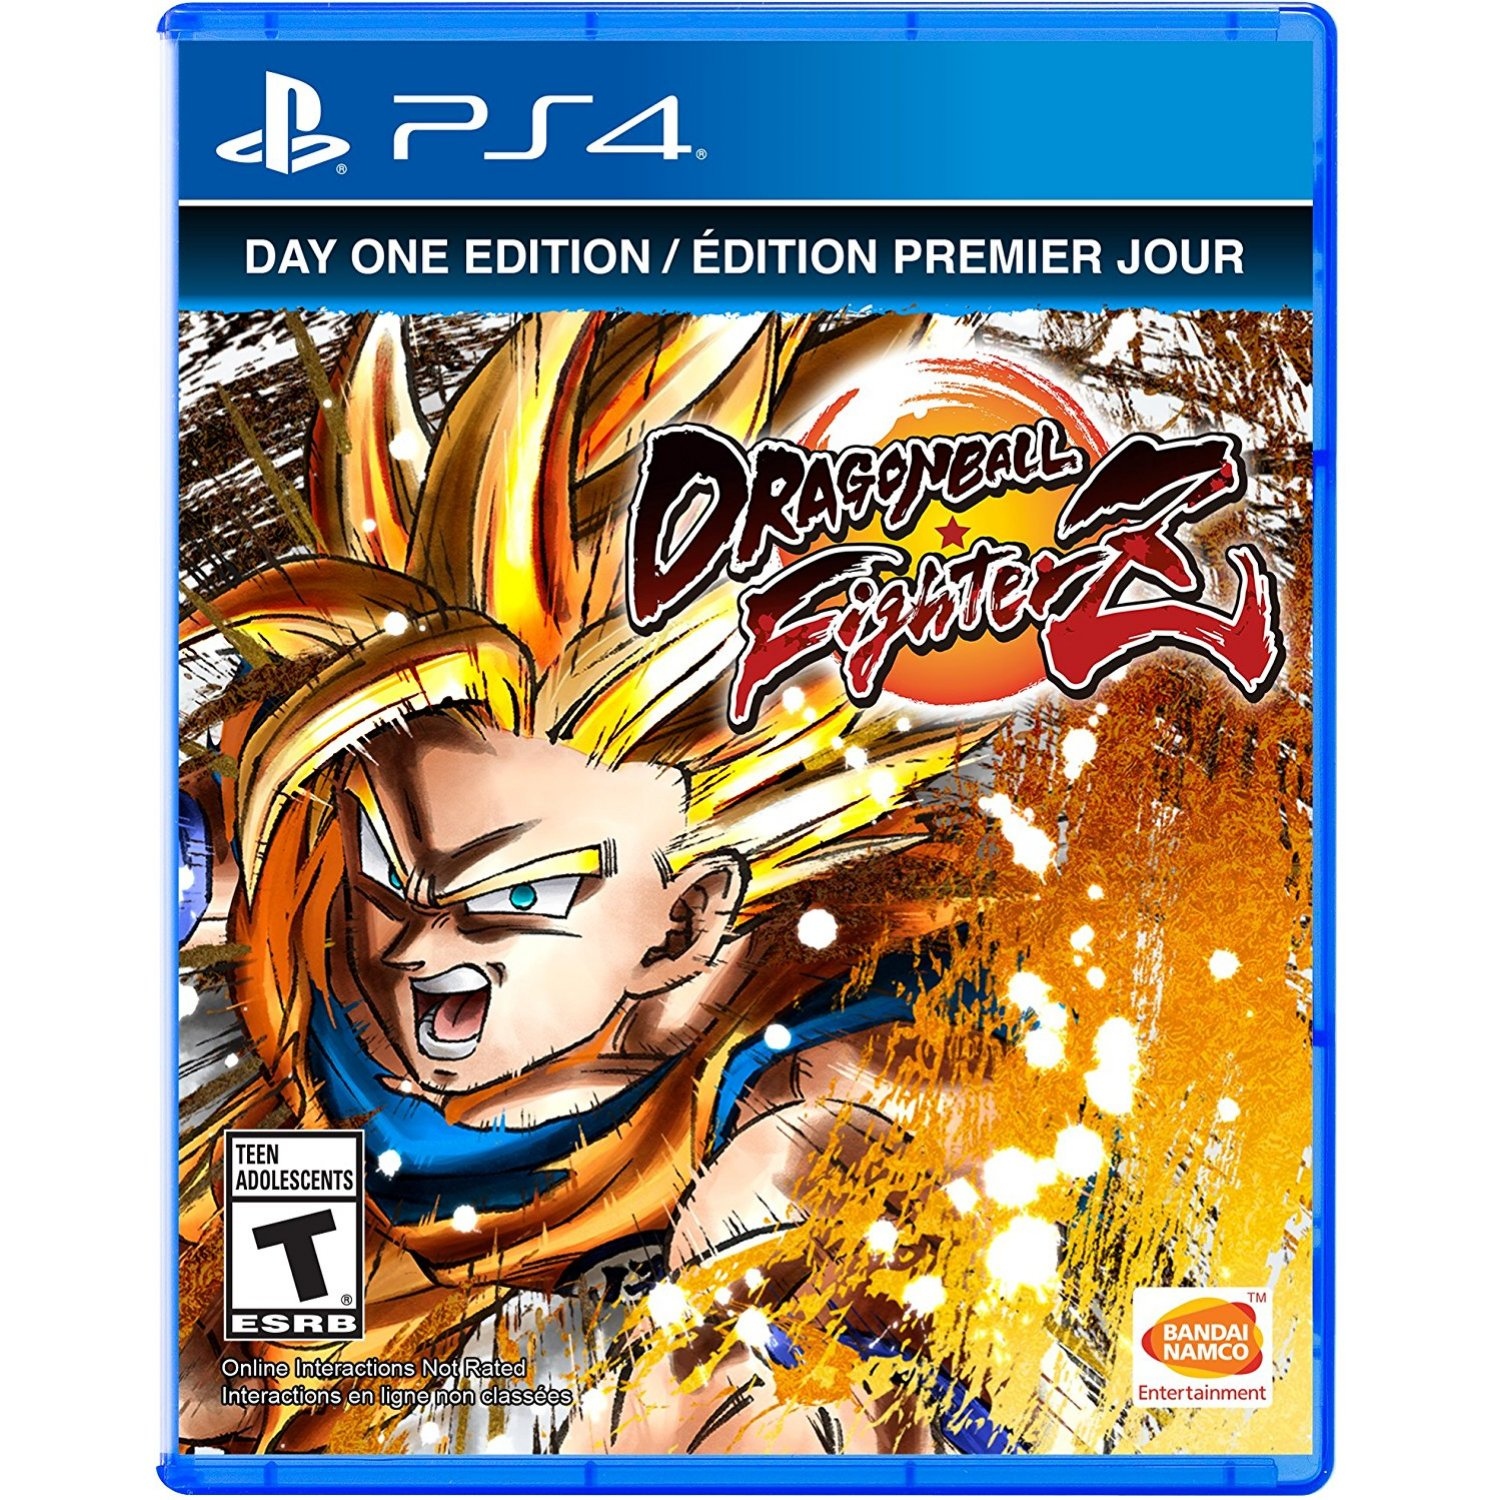 PS4: Dragon Ball FighterZ Fighter Edition (R3)